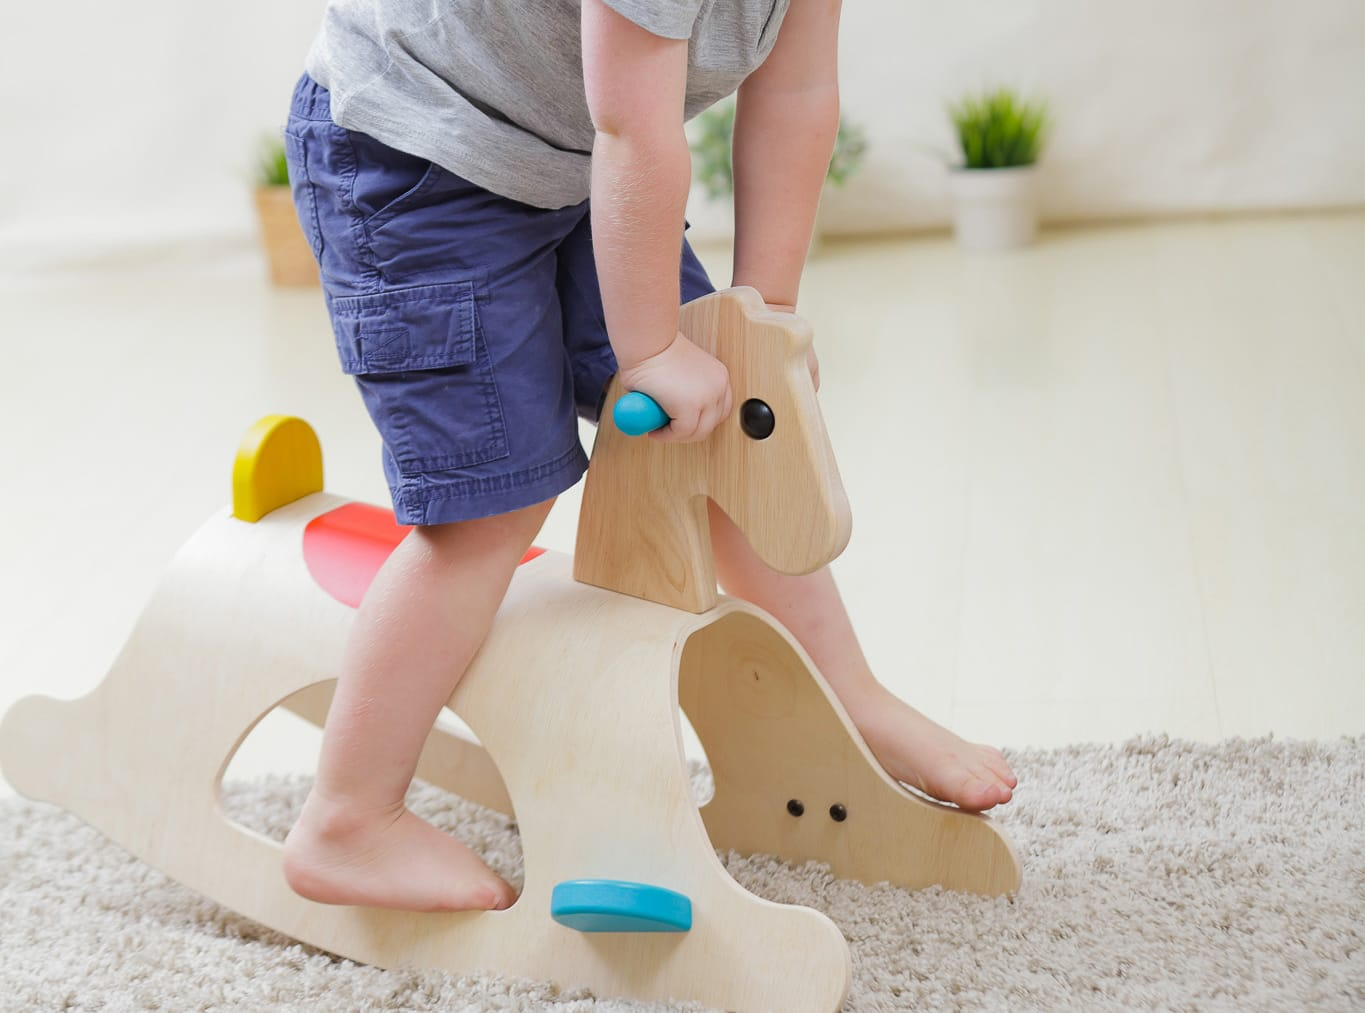 3403_PlanToys_PALOMINO_Active_Play_Gross_Motor_Coordination_Imagination_Language_and_Communications_2yrs_Wooden_toys_Education_toys_Safety_Toys_Non-toxic_3.jpg